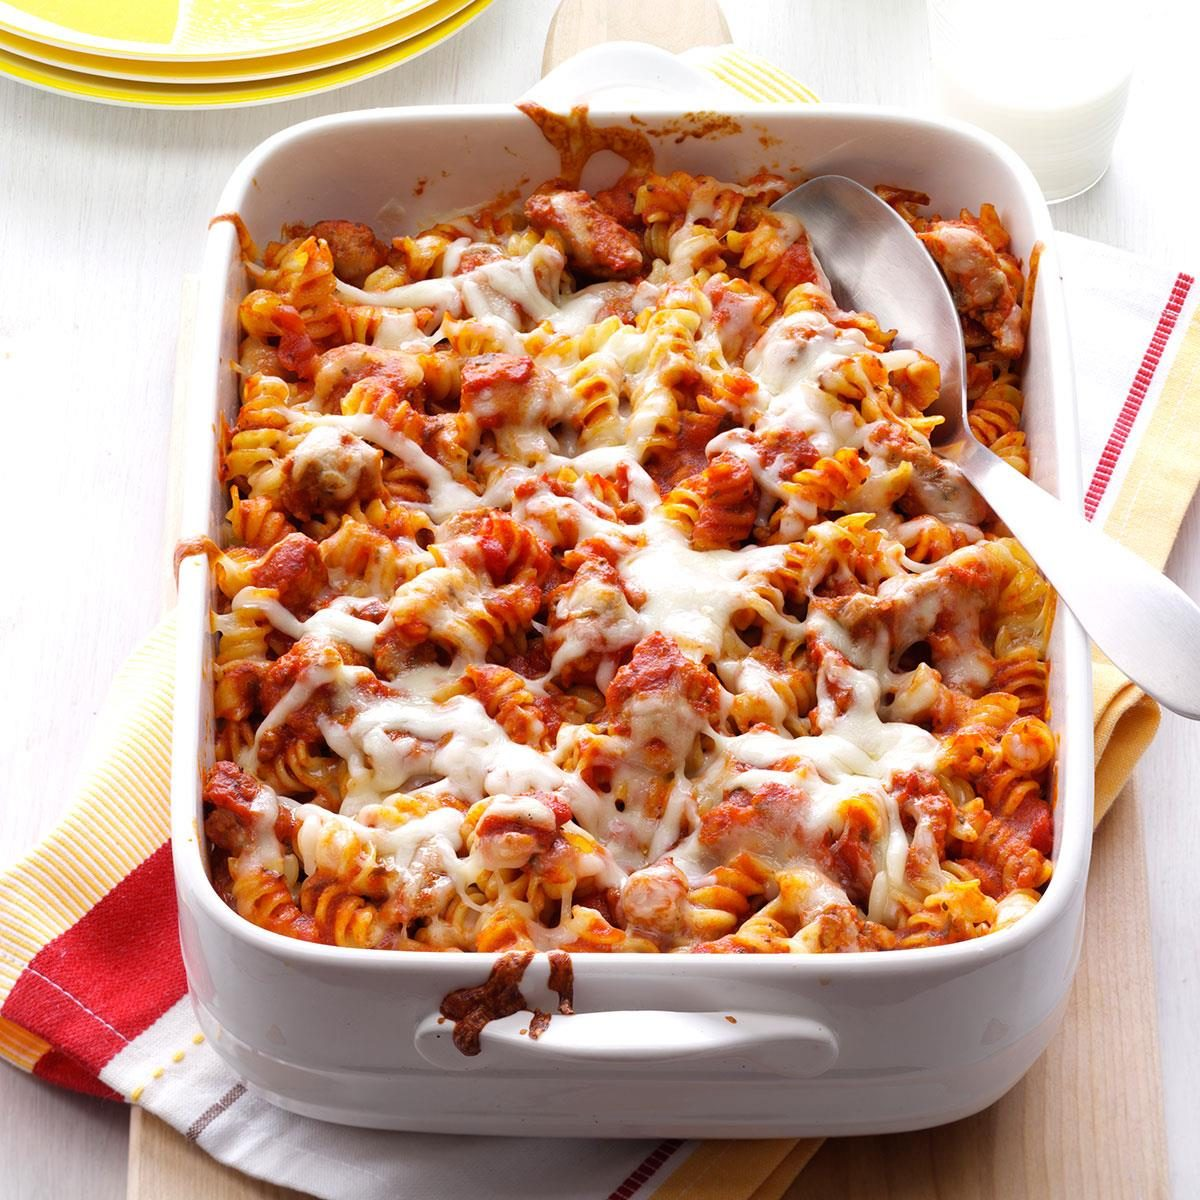 Try one of our top-rated potluck recipes which are sure to please your guests. Our potluck ideas include appetizer, sides, mains, and delicious desserts!